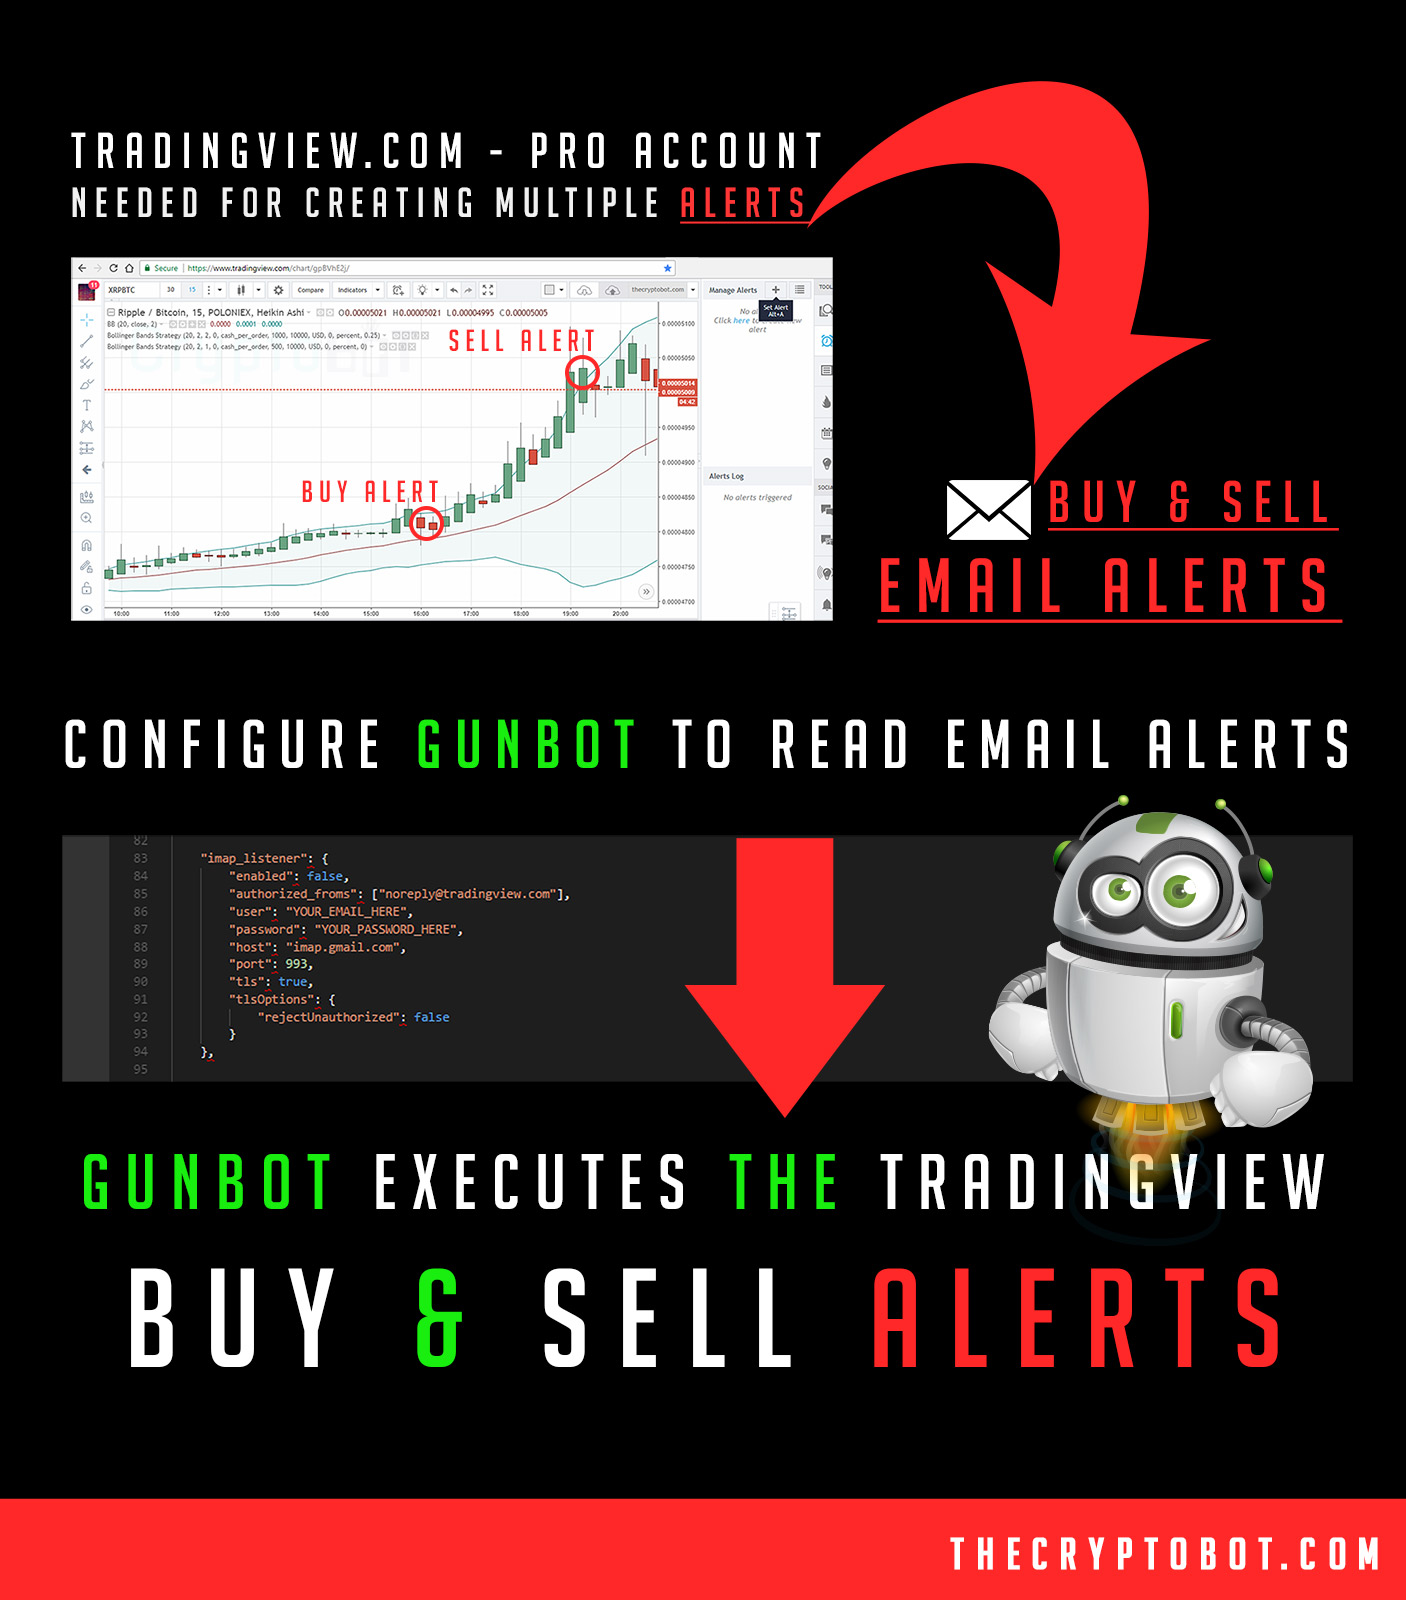 gunbot-trading-view-addon-how-it-works